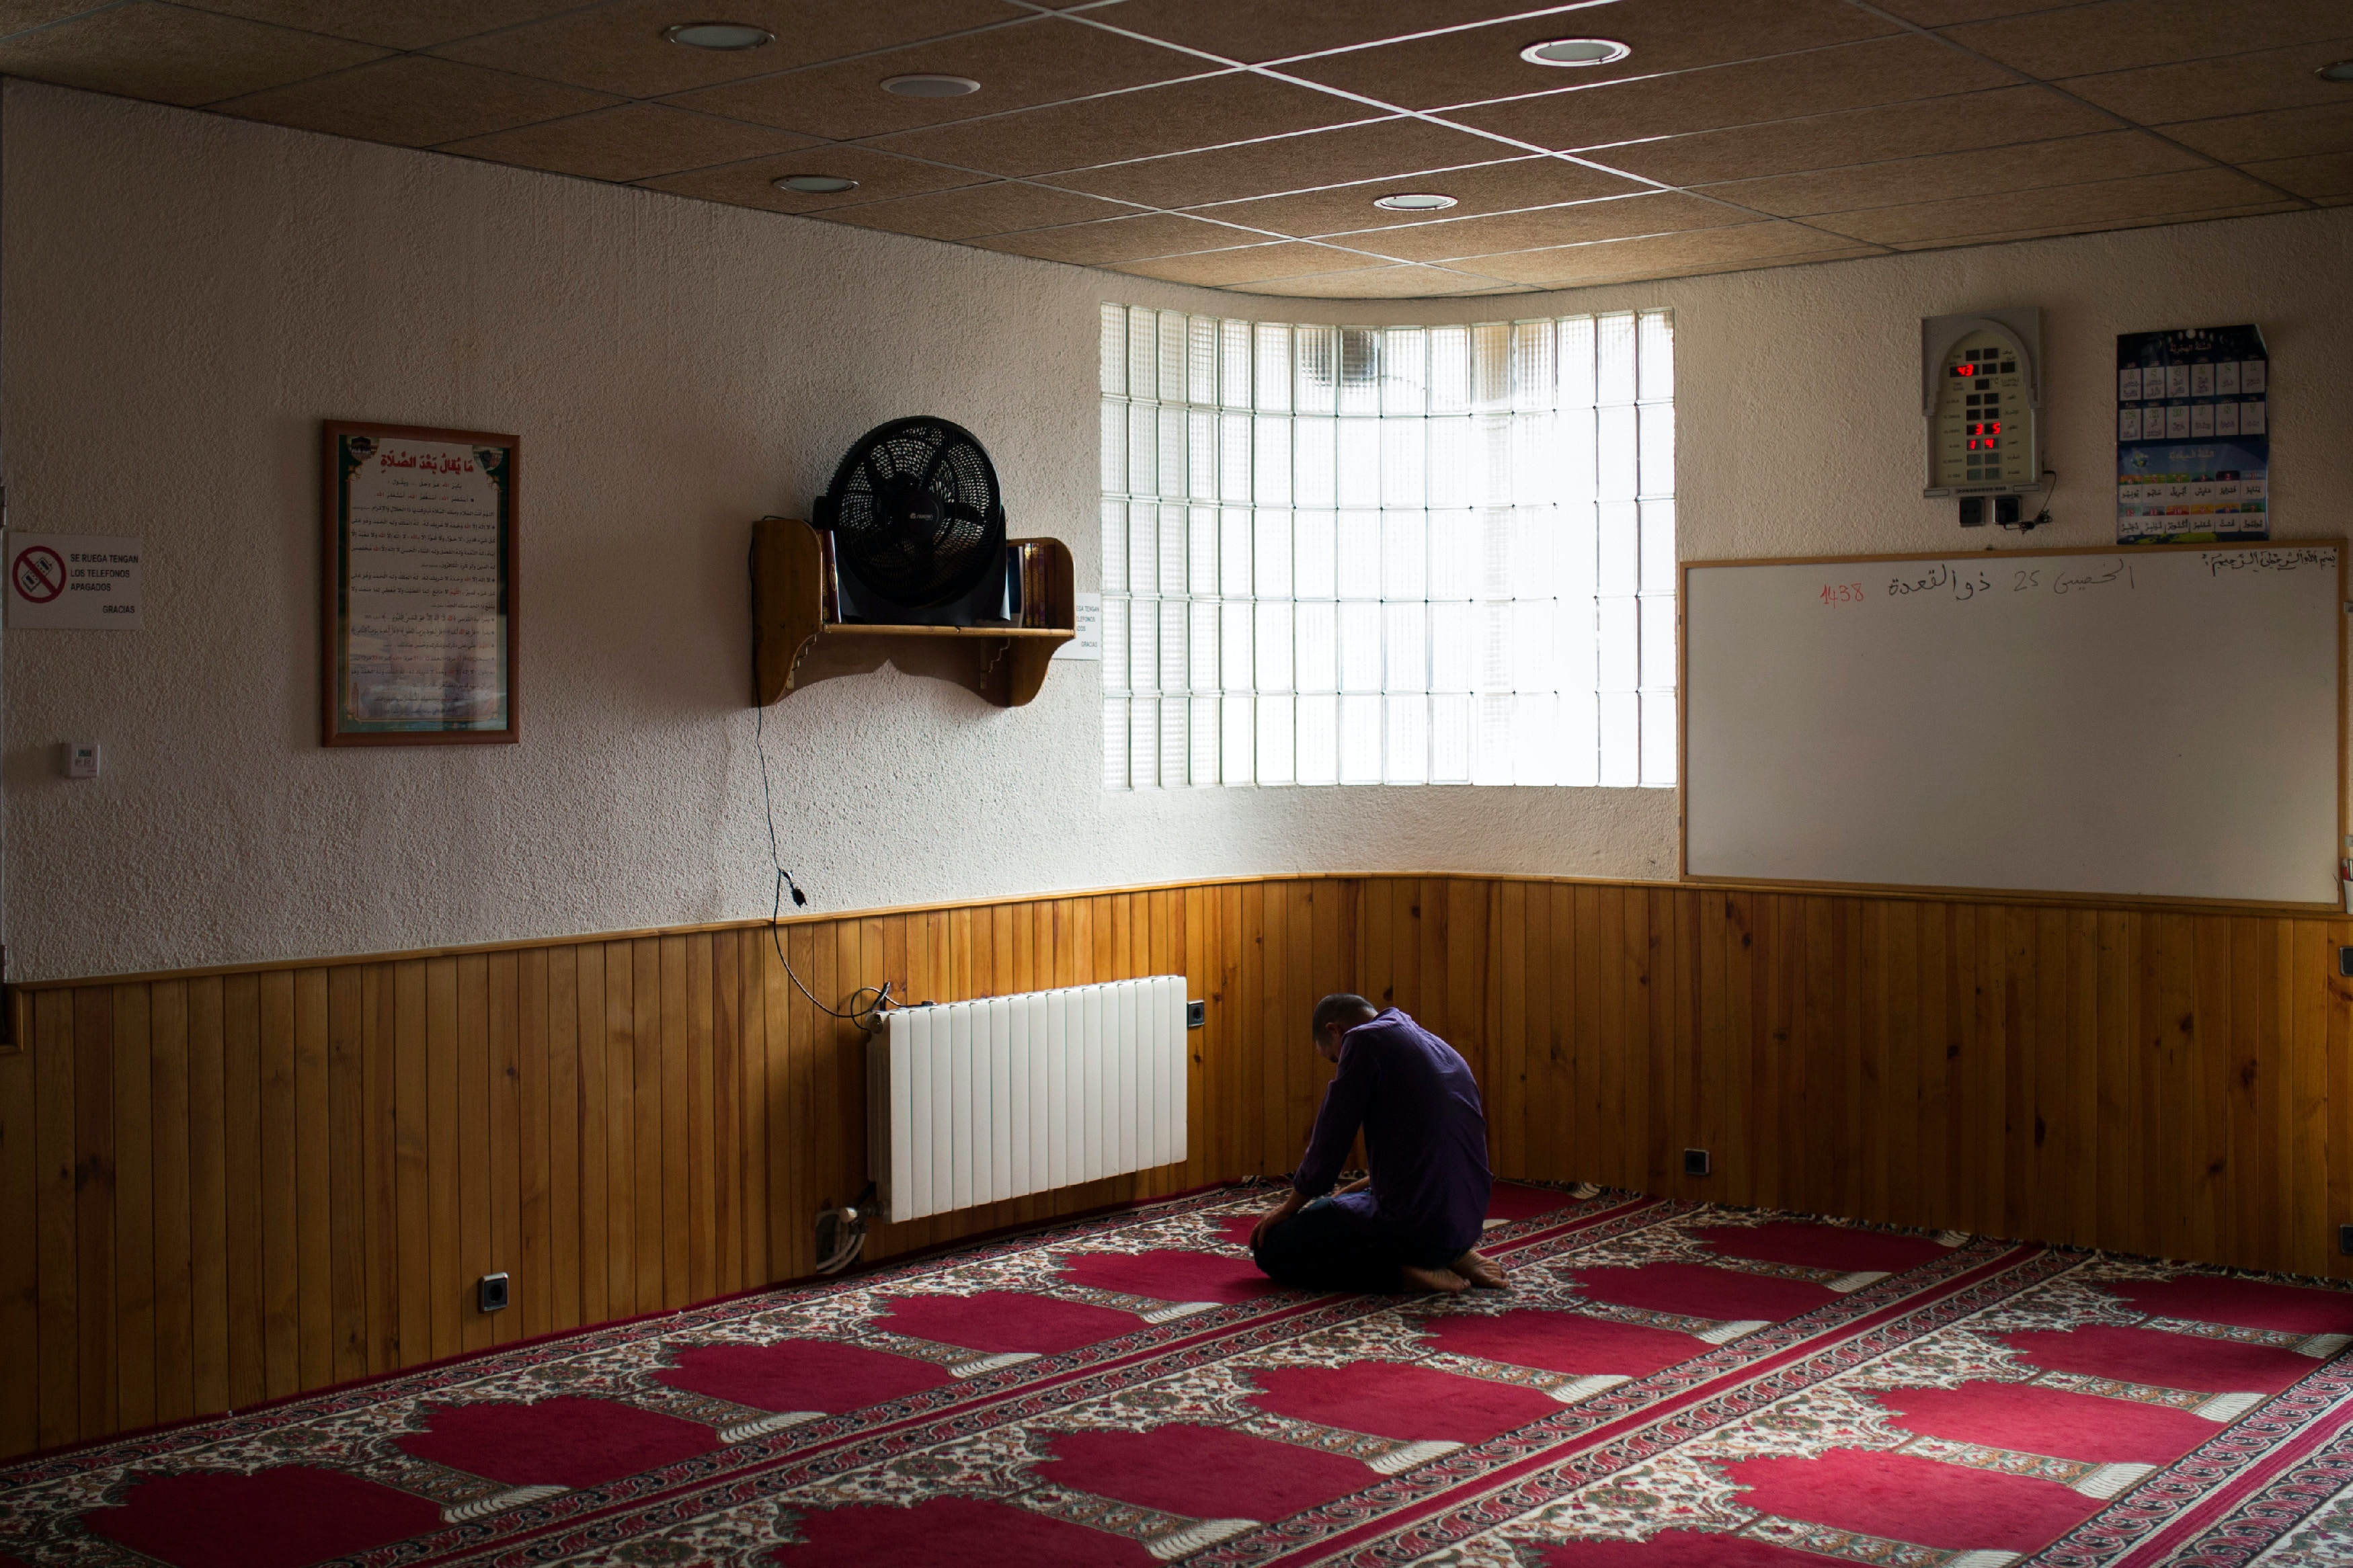 A Muslim worshipper prays in a mosque in Ripoll, north of Barcelona, Spain, Saturday Aug. 19, 2017. Authorities in Spain and France pressed the search Saturday for the supposed ringleader of an Islamic extremist cell that carried out vehicle attacks in Barcelona and a seaside resort, as the investigation focused on links among the Moroccan members and the house where they plotted the carnage. (AP Photo/Francisco Seco)